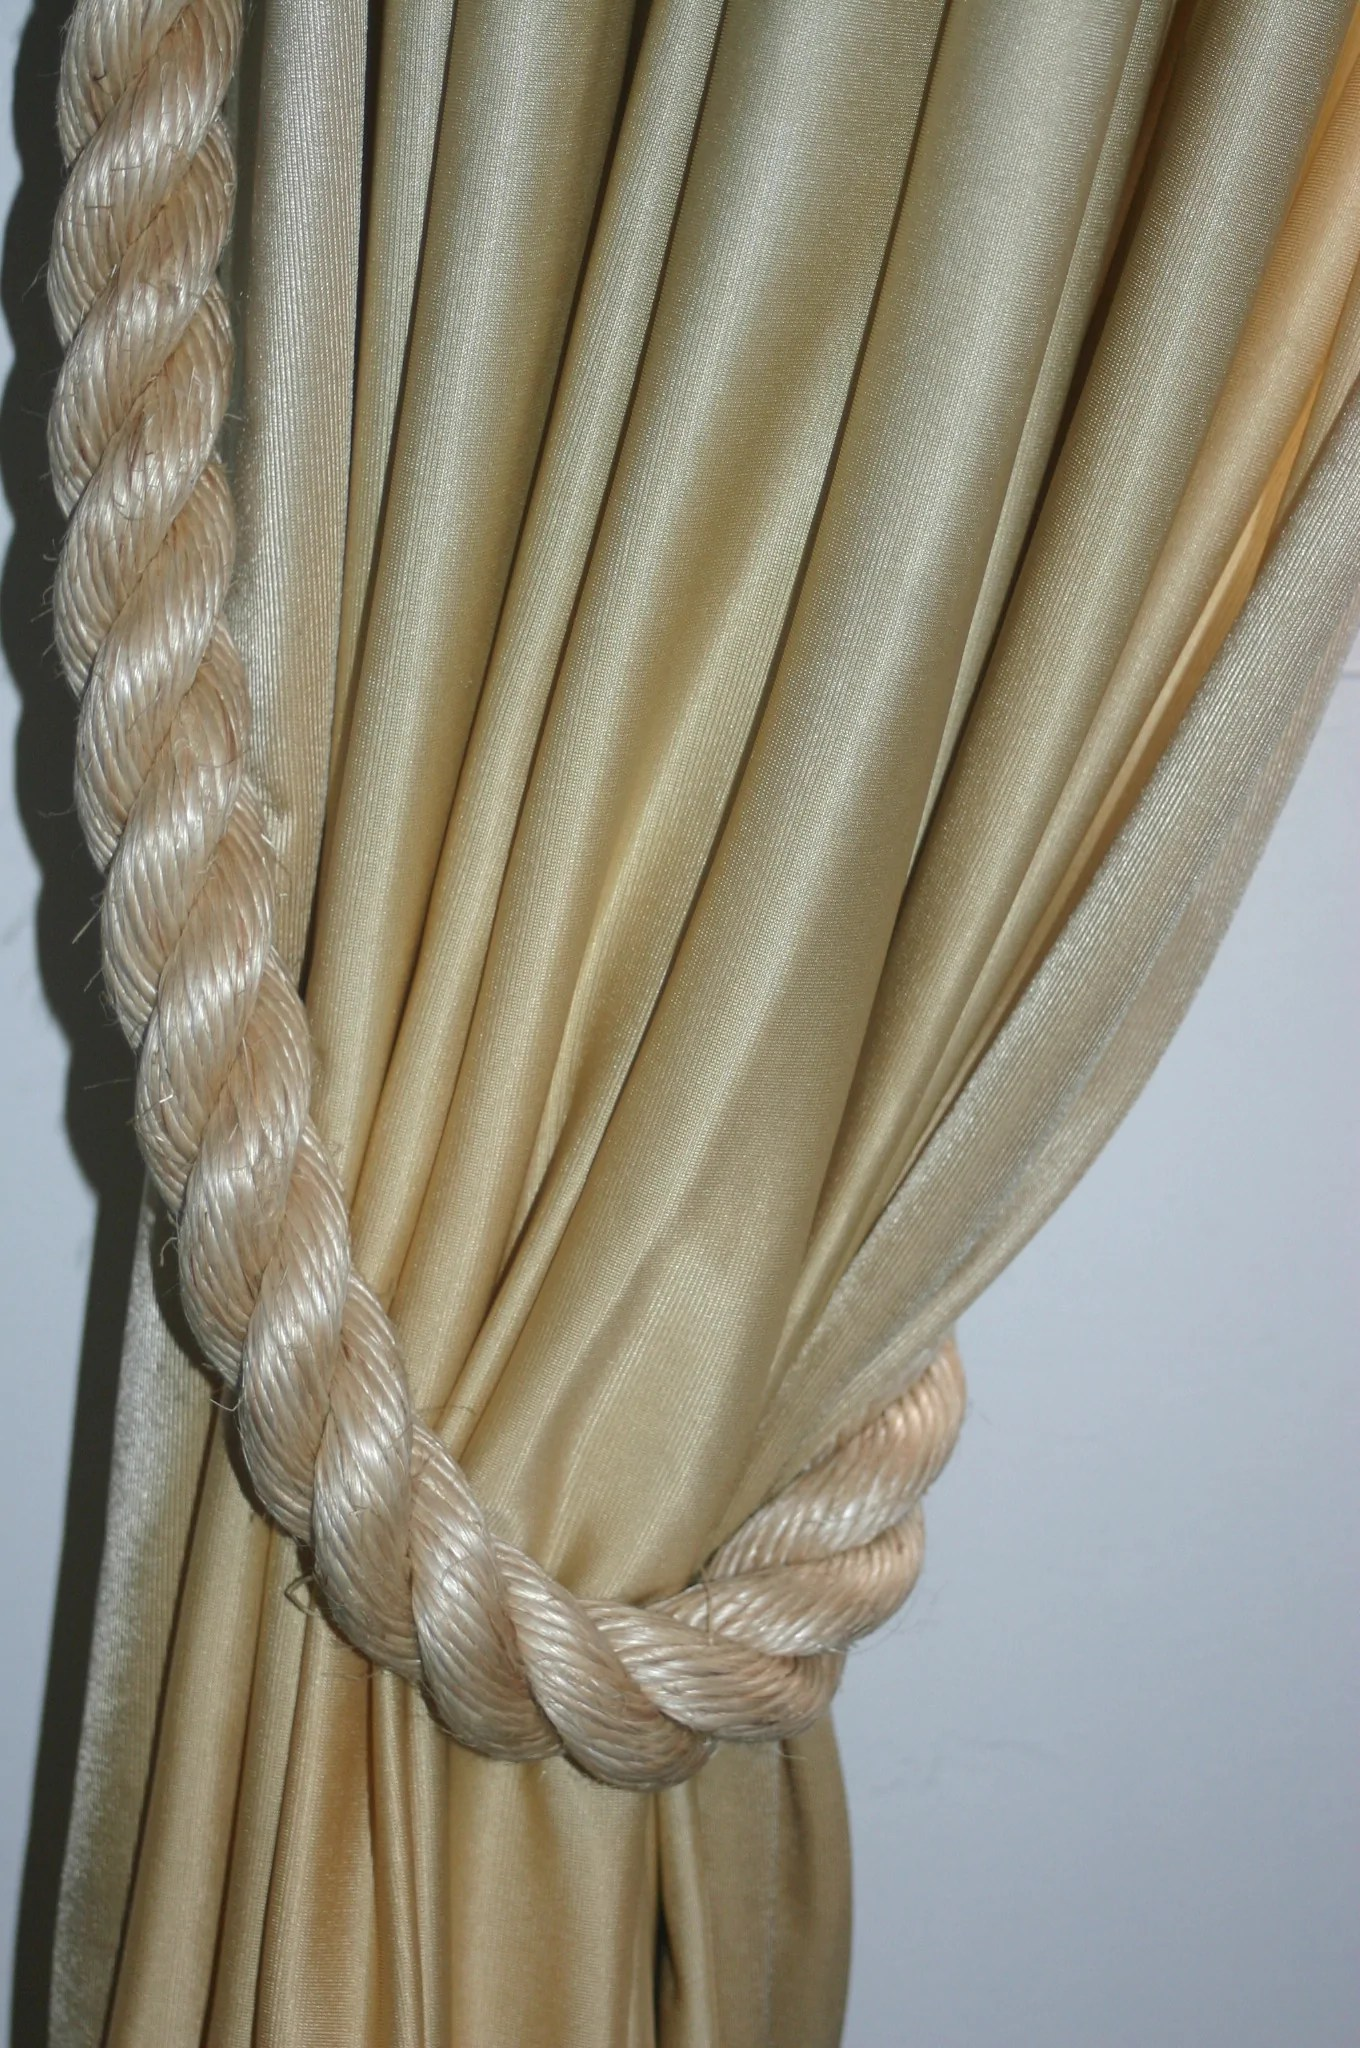 Rope Curtain Thick Rope Curtain Tie Backs Beige